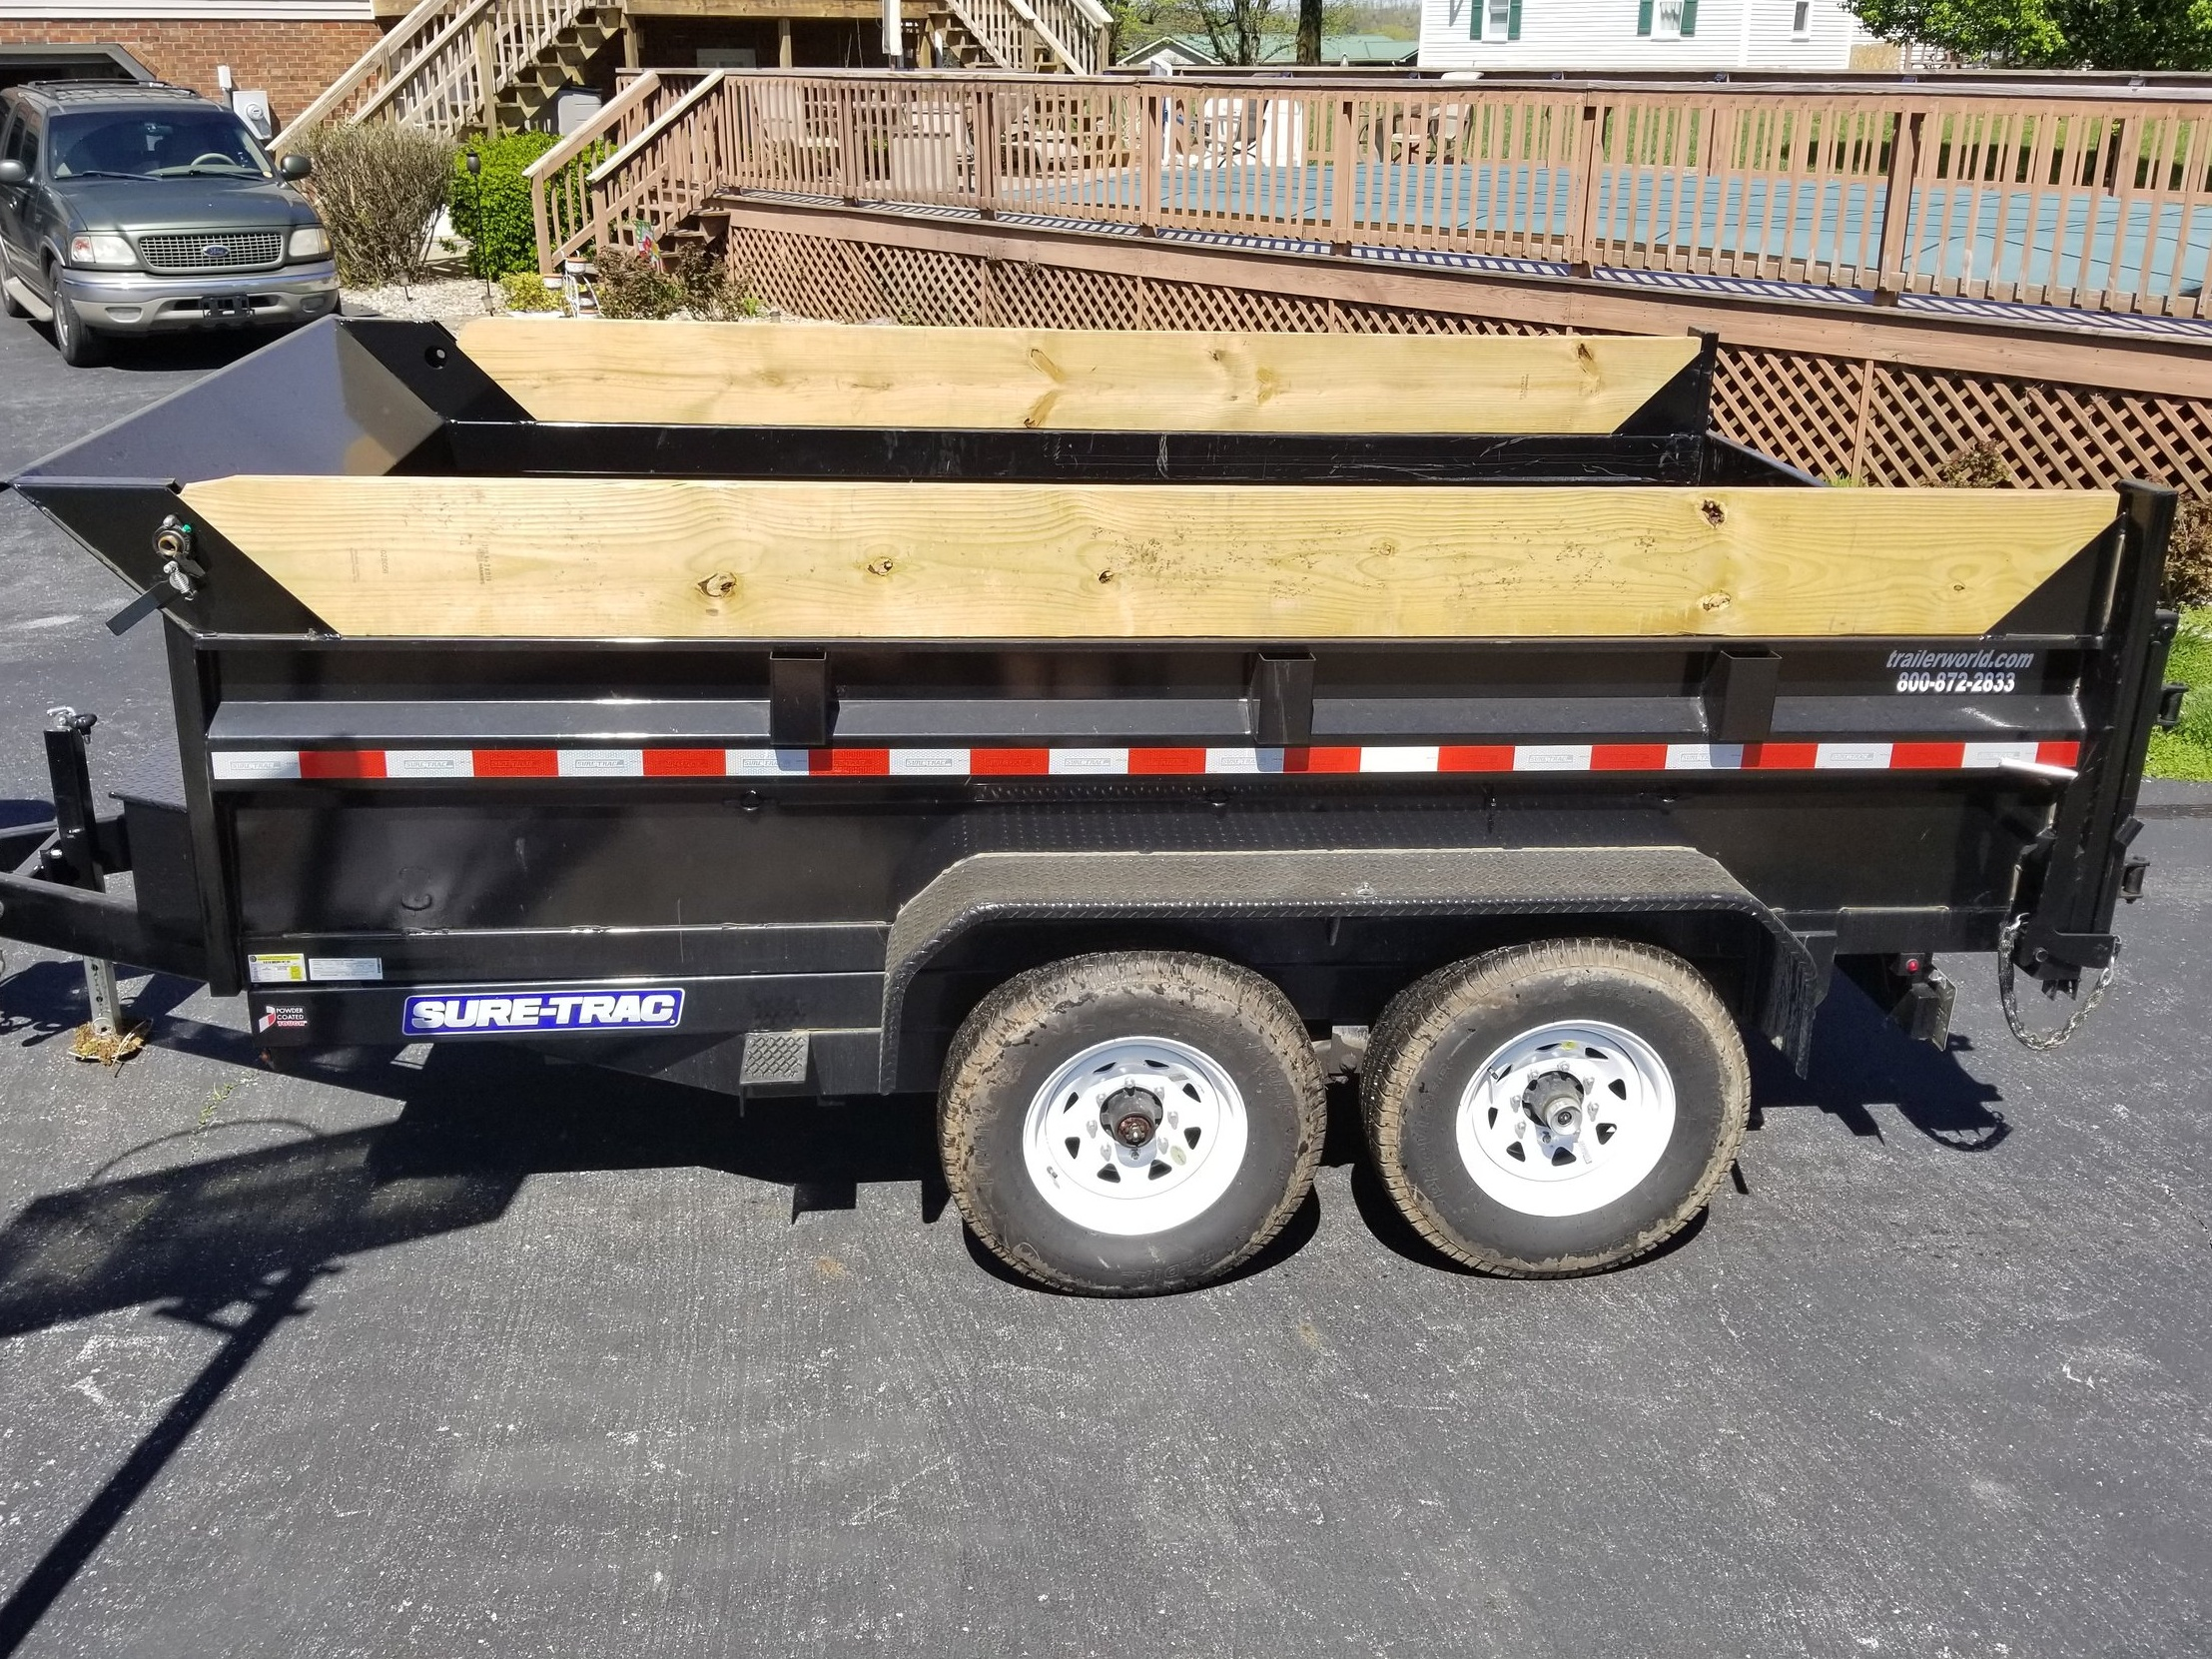 Sur Trac Hydraulic Dump Trailer. Used Twice. Rated to 8,760 lbs. Bed size: 8x12.